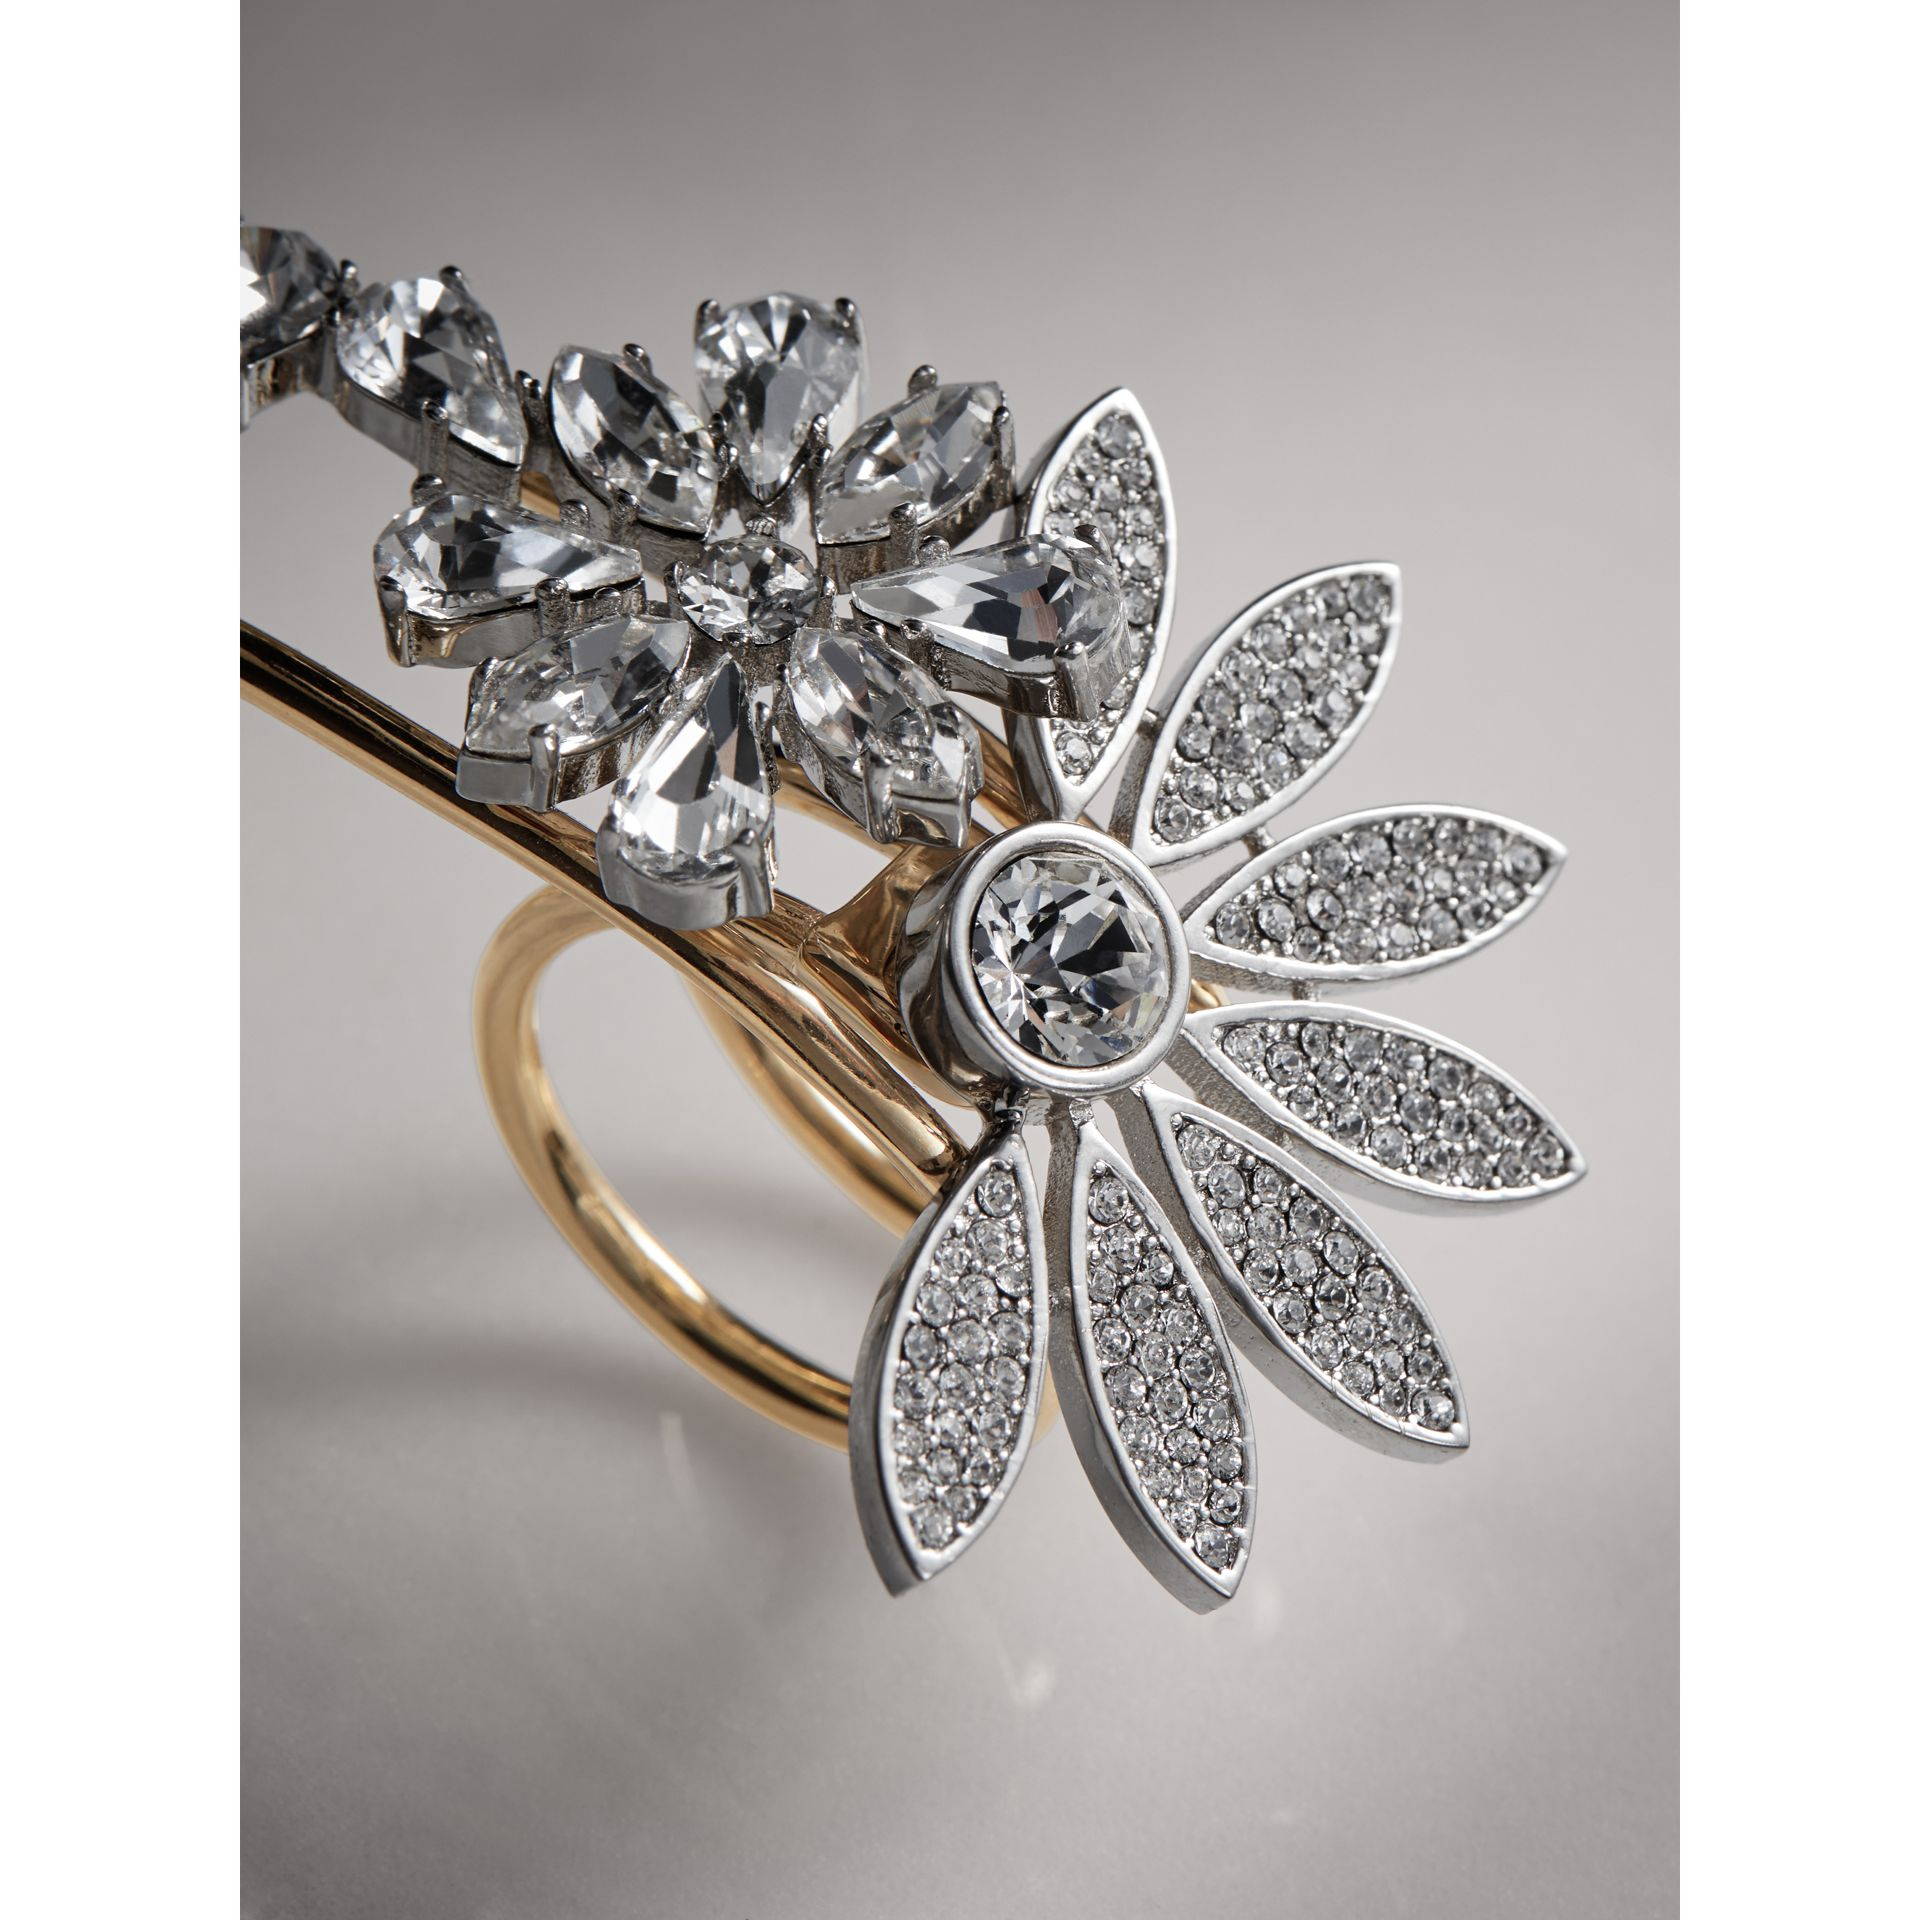 Bague double en laiton avec marguerites en cristal - Femme | Burberry - photo de la galerie 1